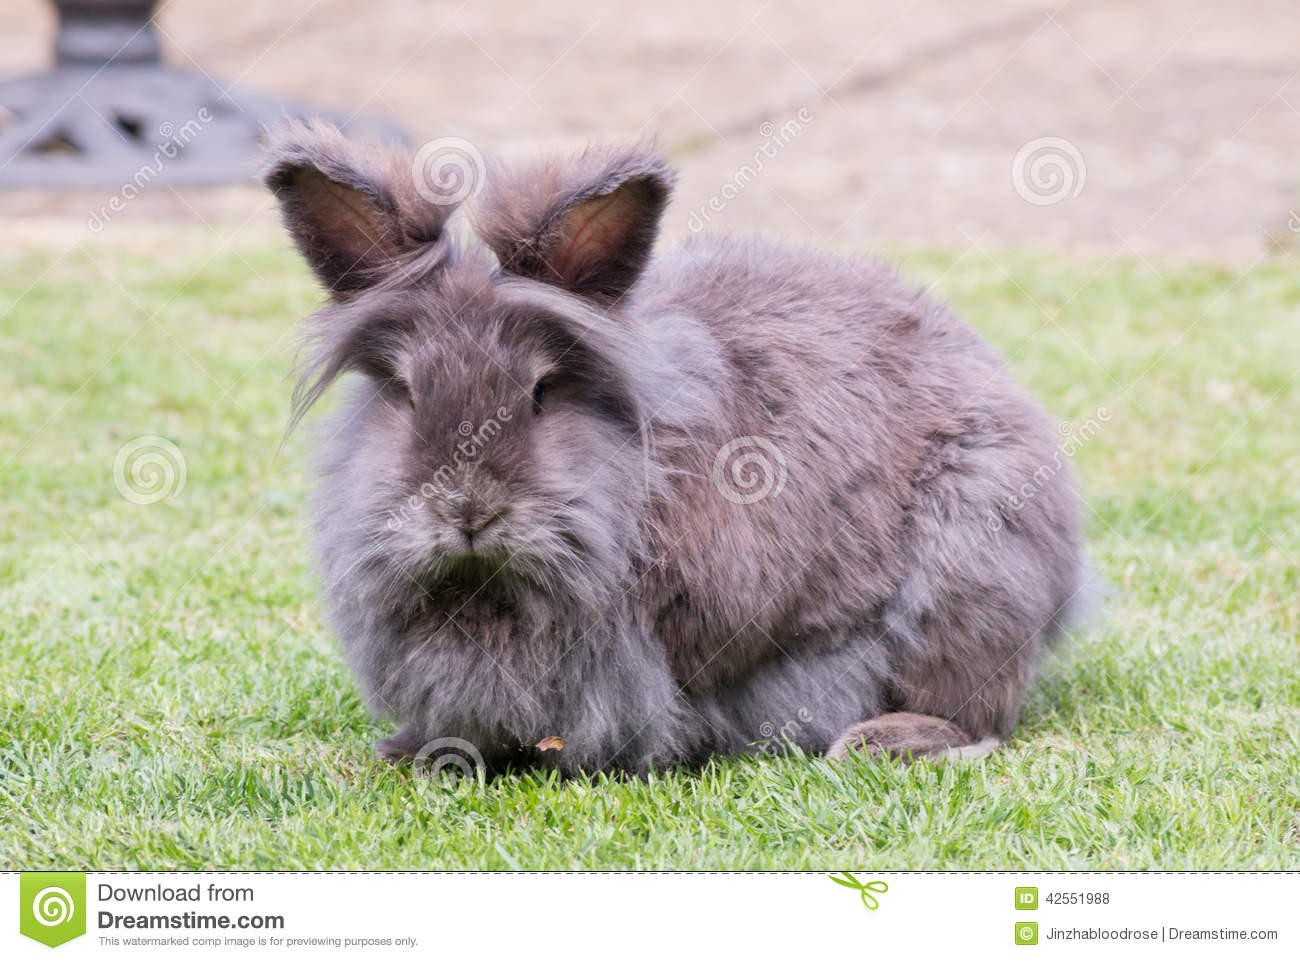 Brown and white lionhead rabbit - photo#21